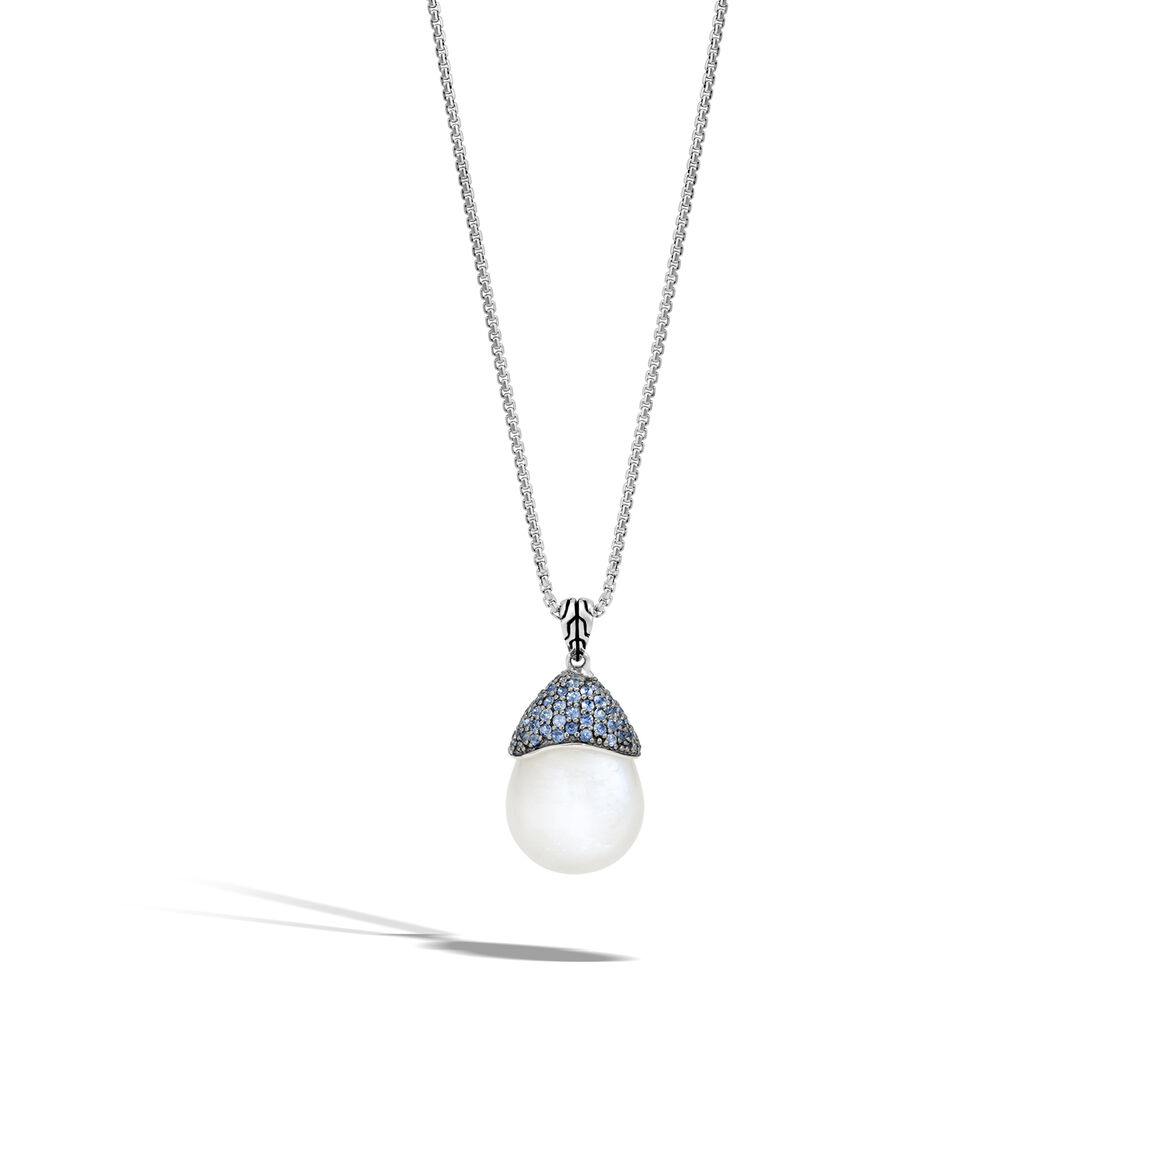 Classic Chain Celestial Orb Pendant, Silver, 19x6MM Gemstone